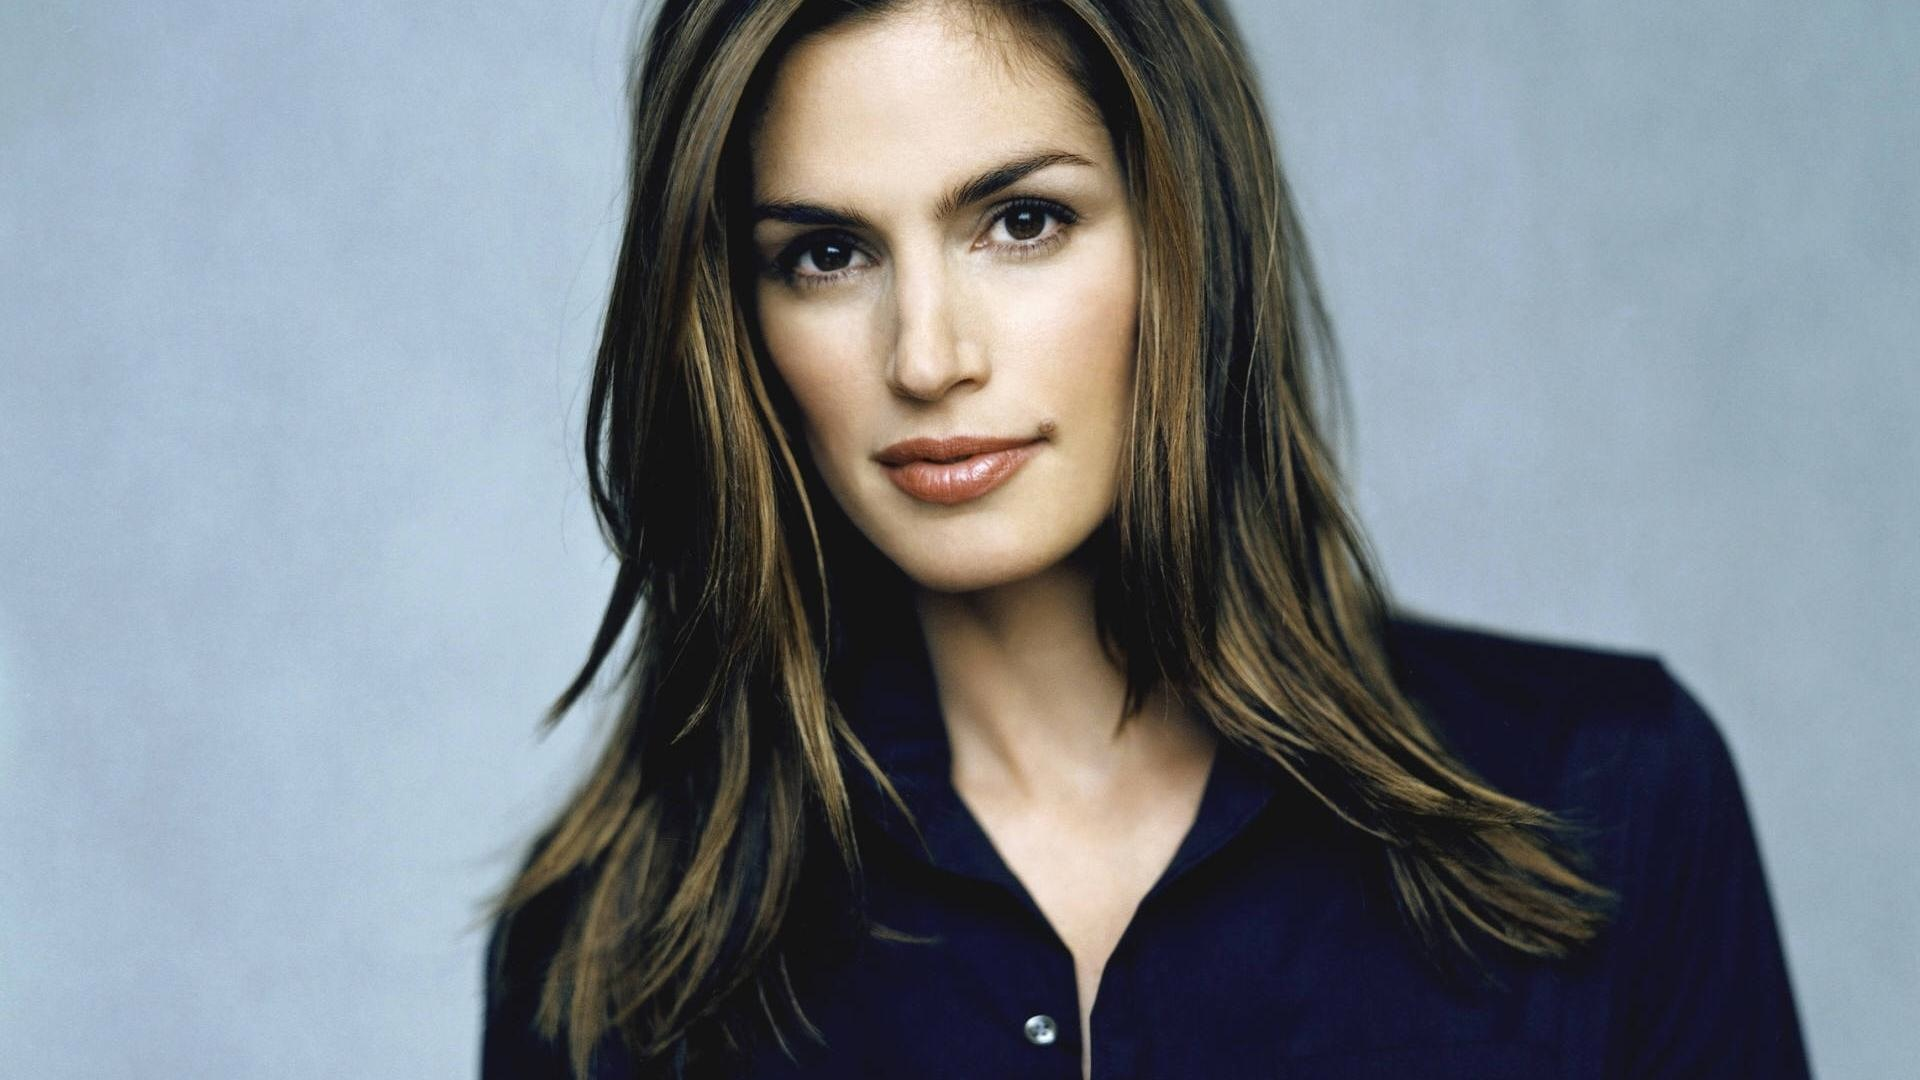 Unretouched photo of Cindy Crawford is fake, says photographer